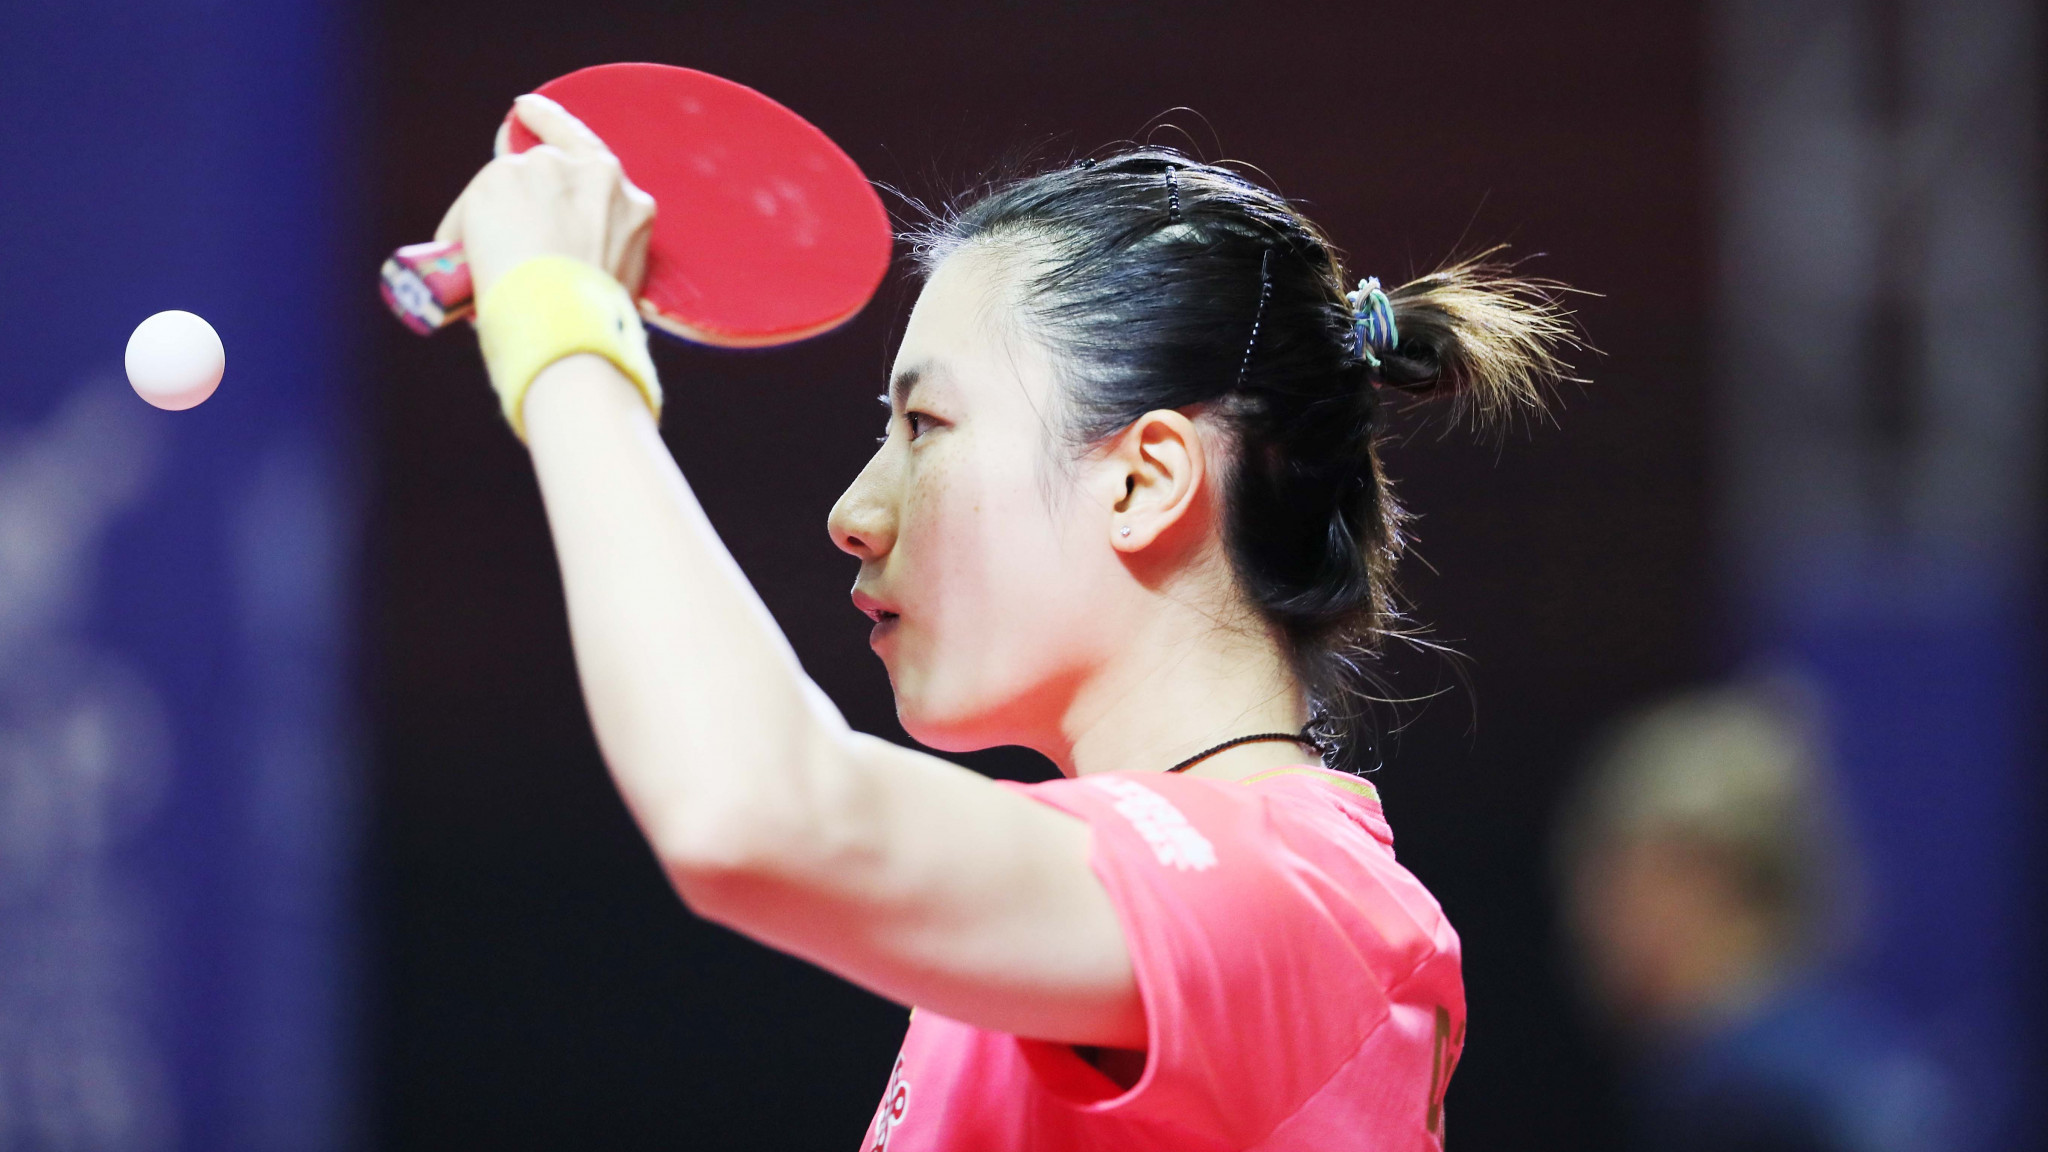 North Korea's Cha Hyo Sim pushes Ding Ning at Asian Table Tennis Championships